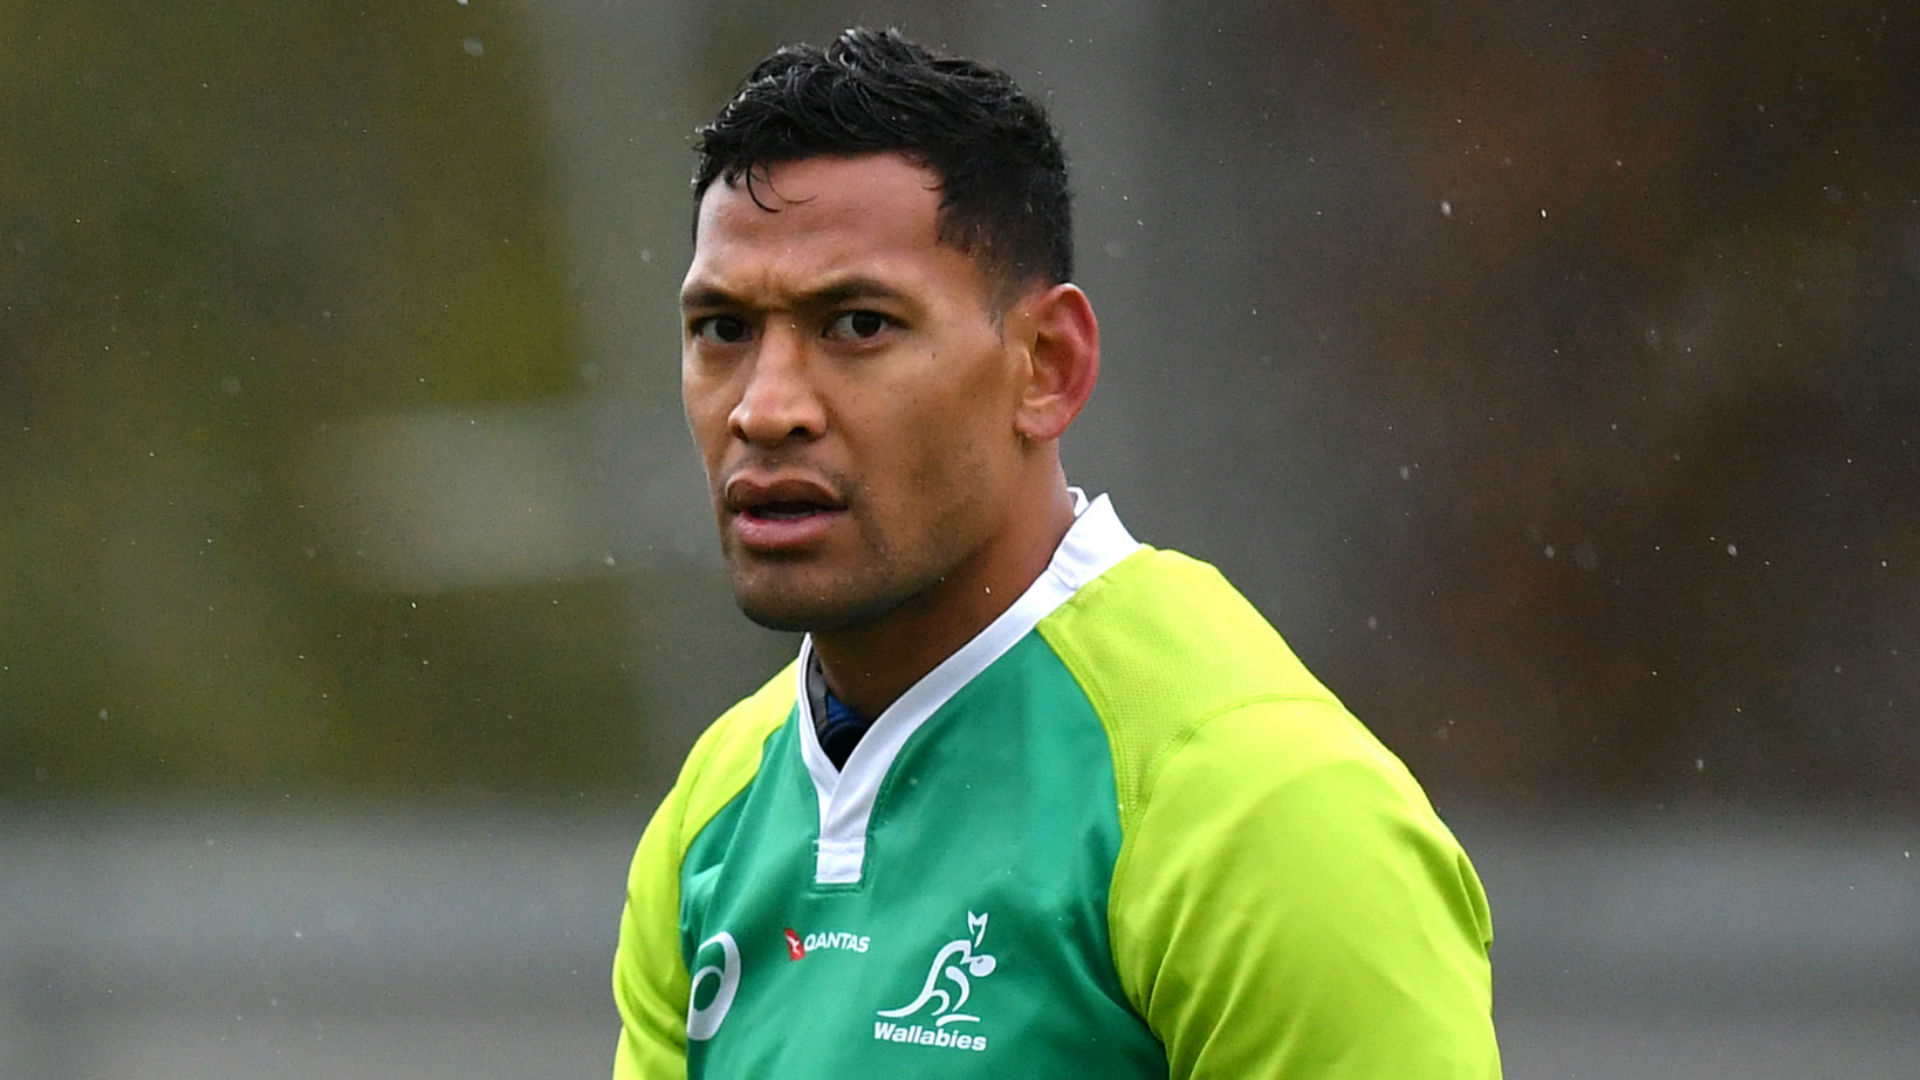 Though he has not appealed against his ban, Israel Folau is still considering his options after his contract was terminated.